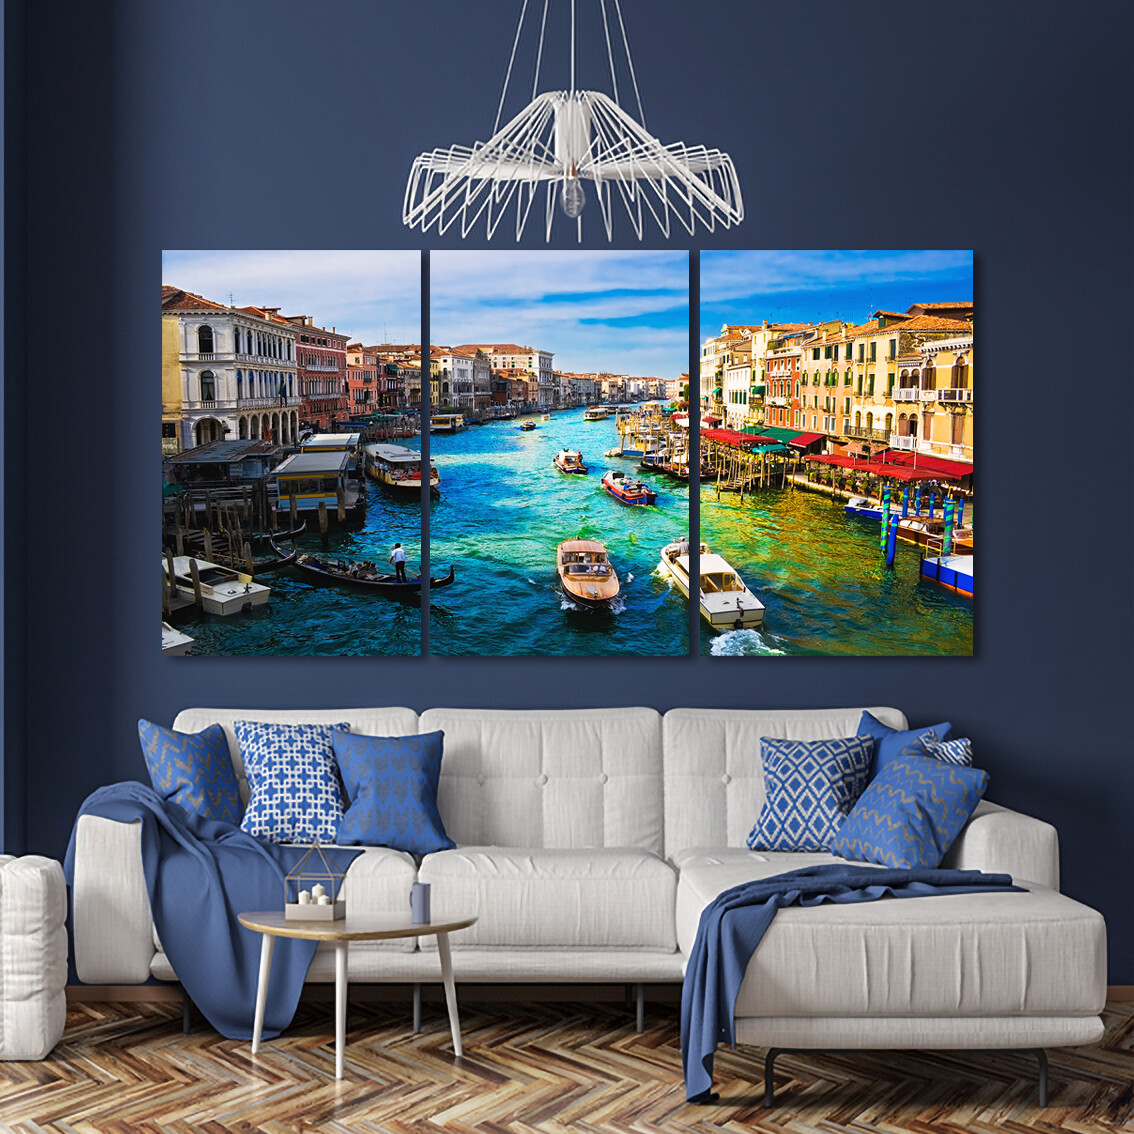 Colourful Venice (3 Panels)  - Modern Luxury Wall art Printed on Acrylic Glass - Frameless and Ready to Hang